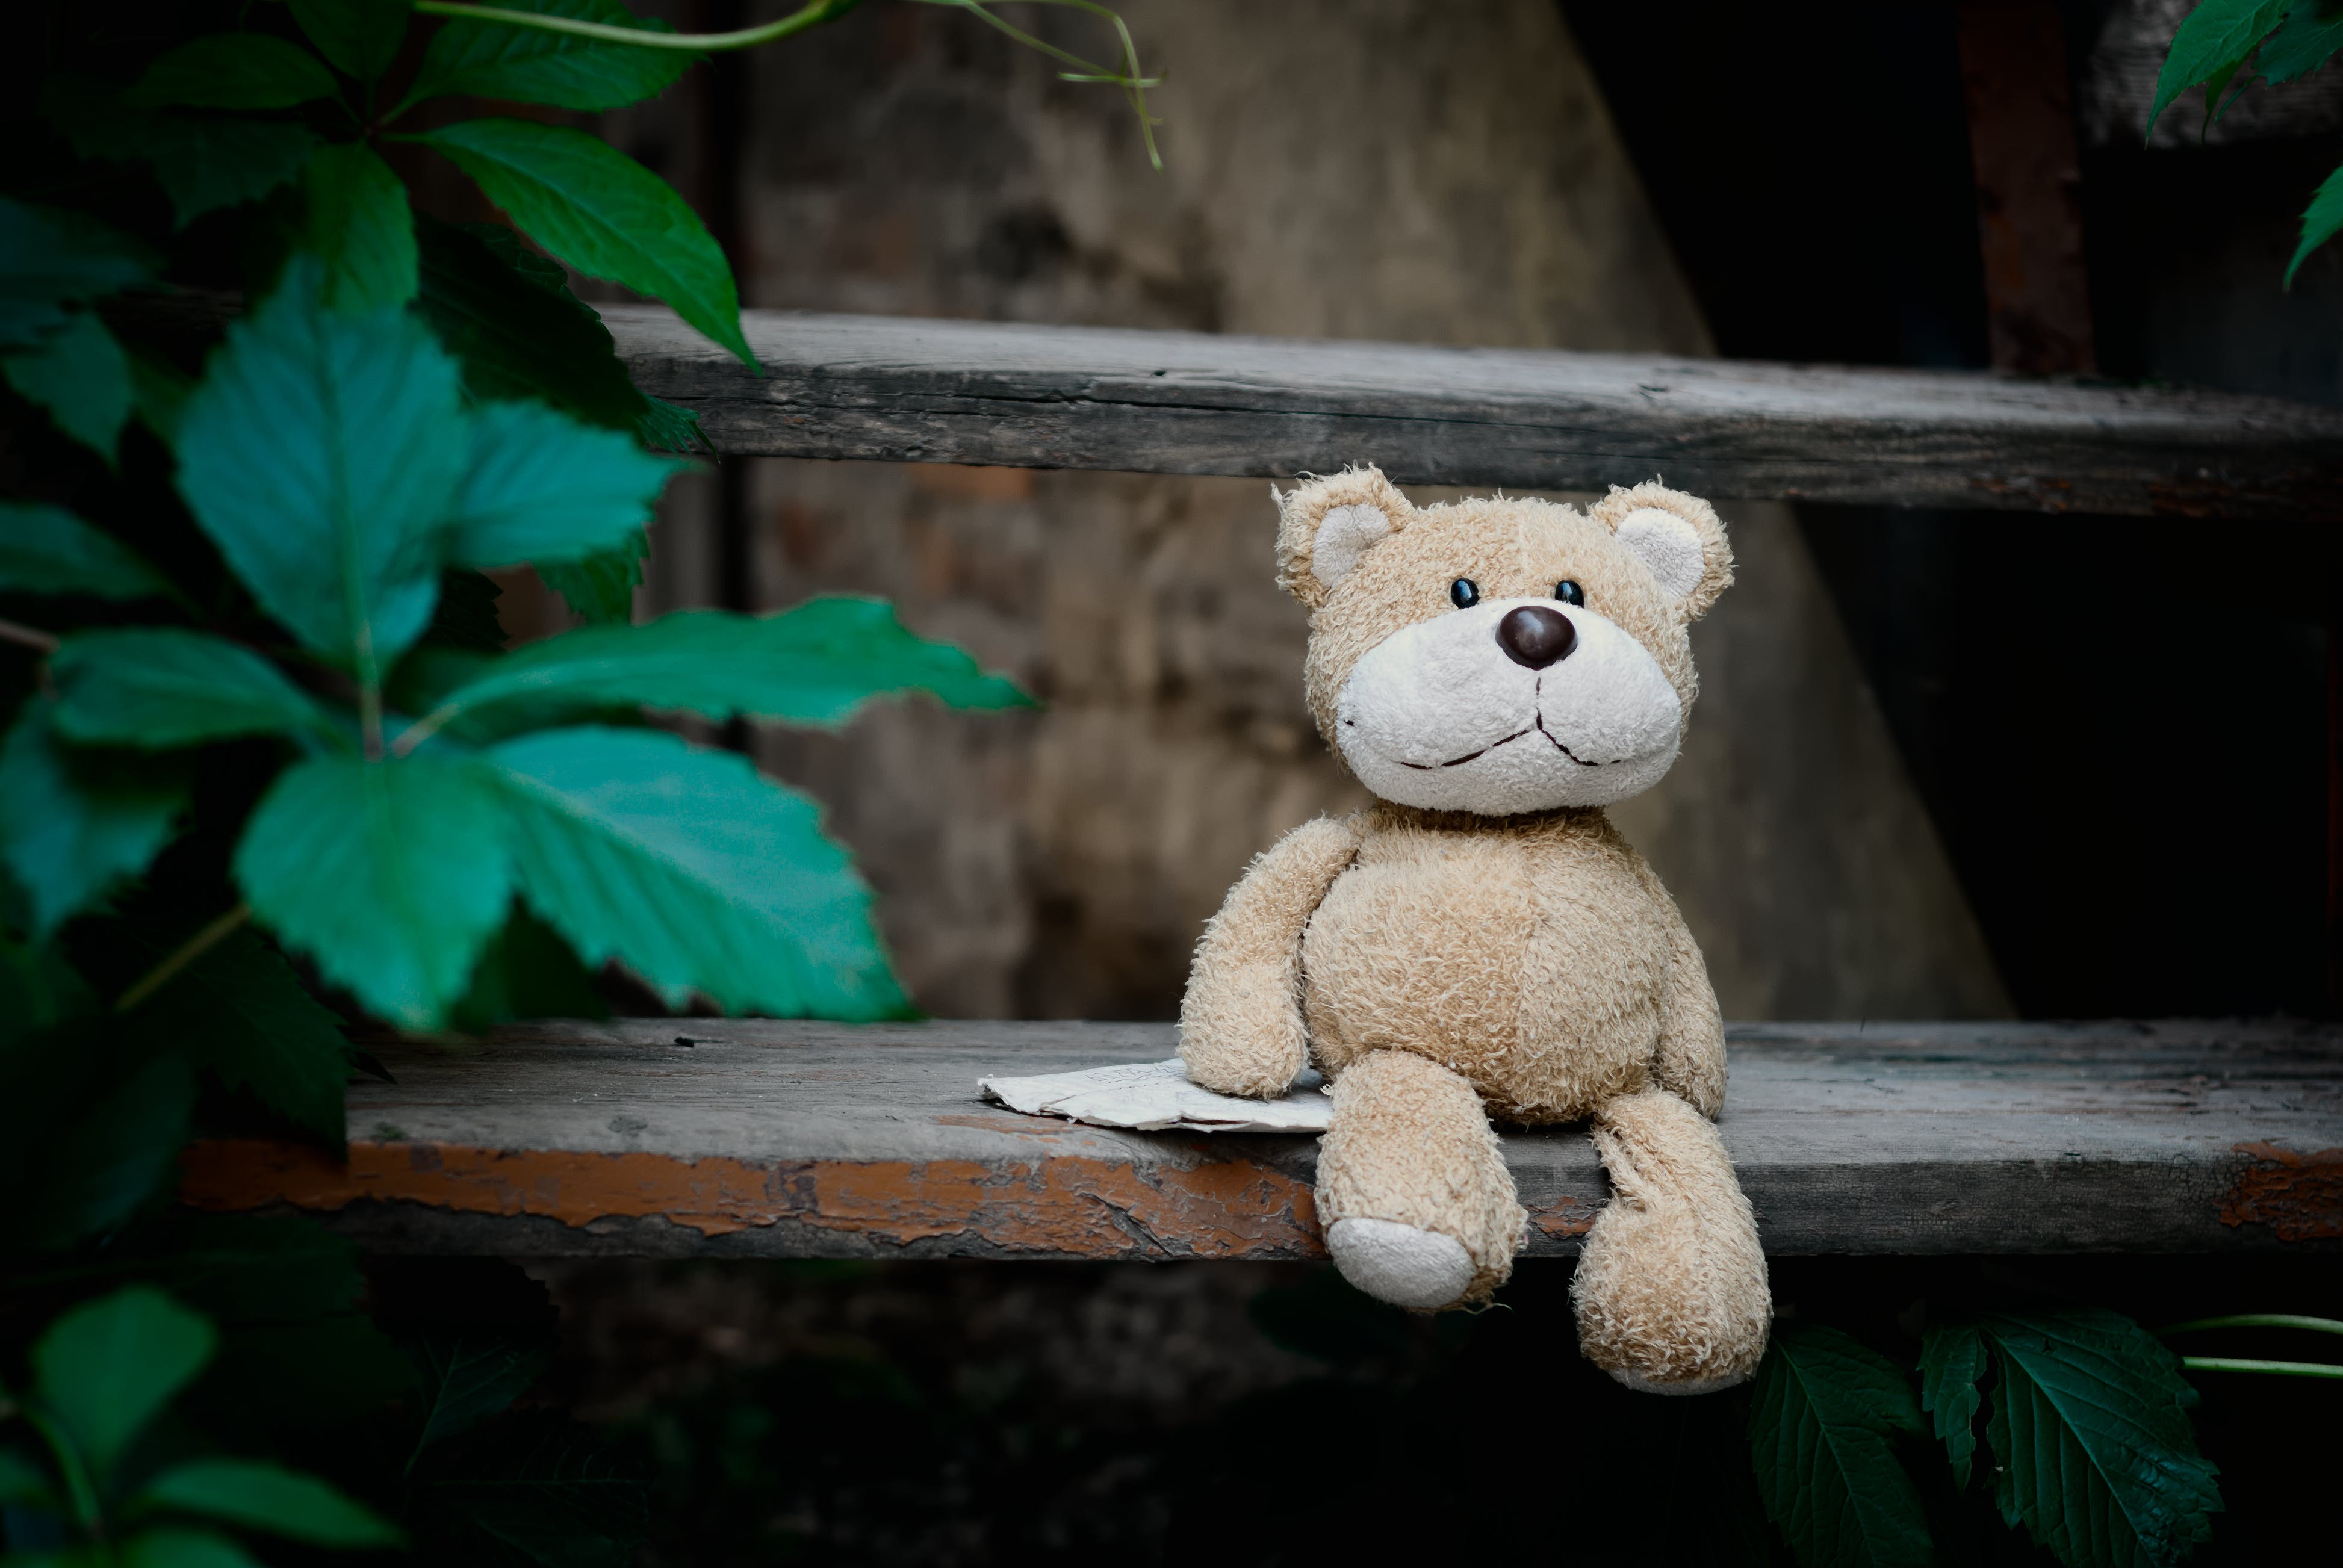 Brown Bear Plush Toy on Wooden Stairs beside Plants